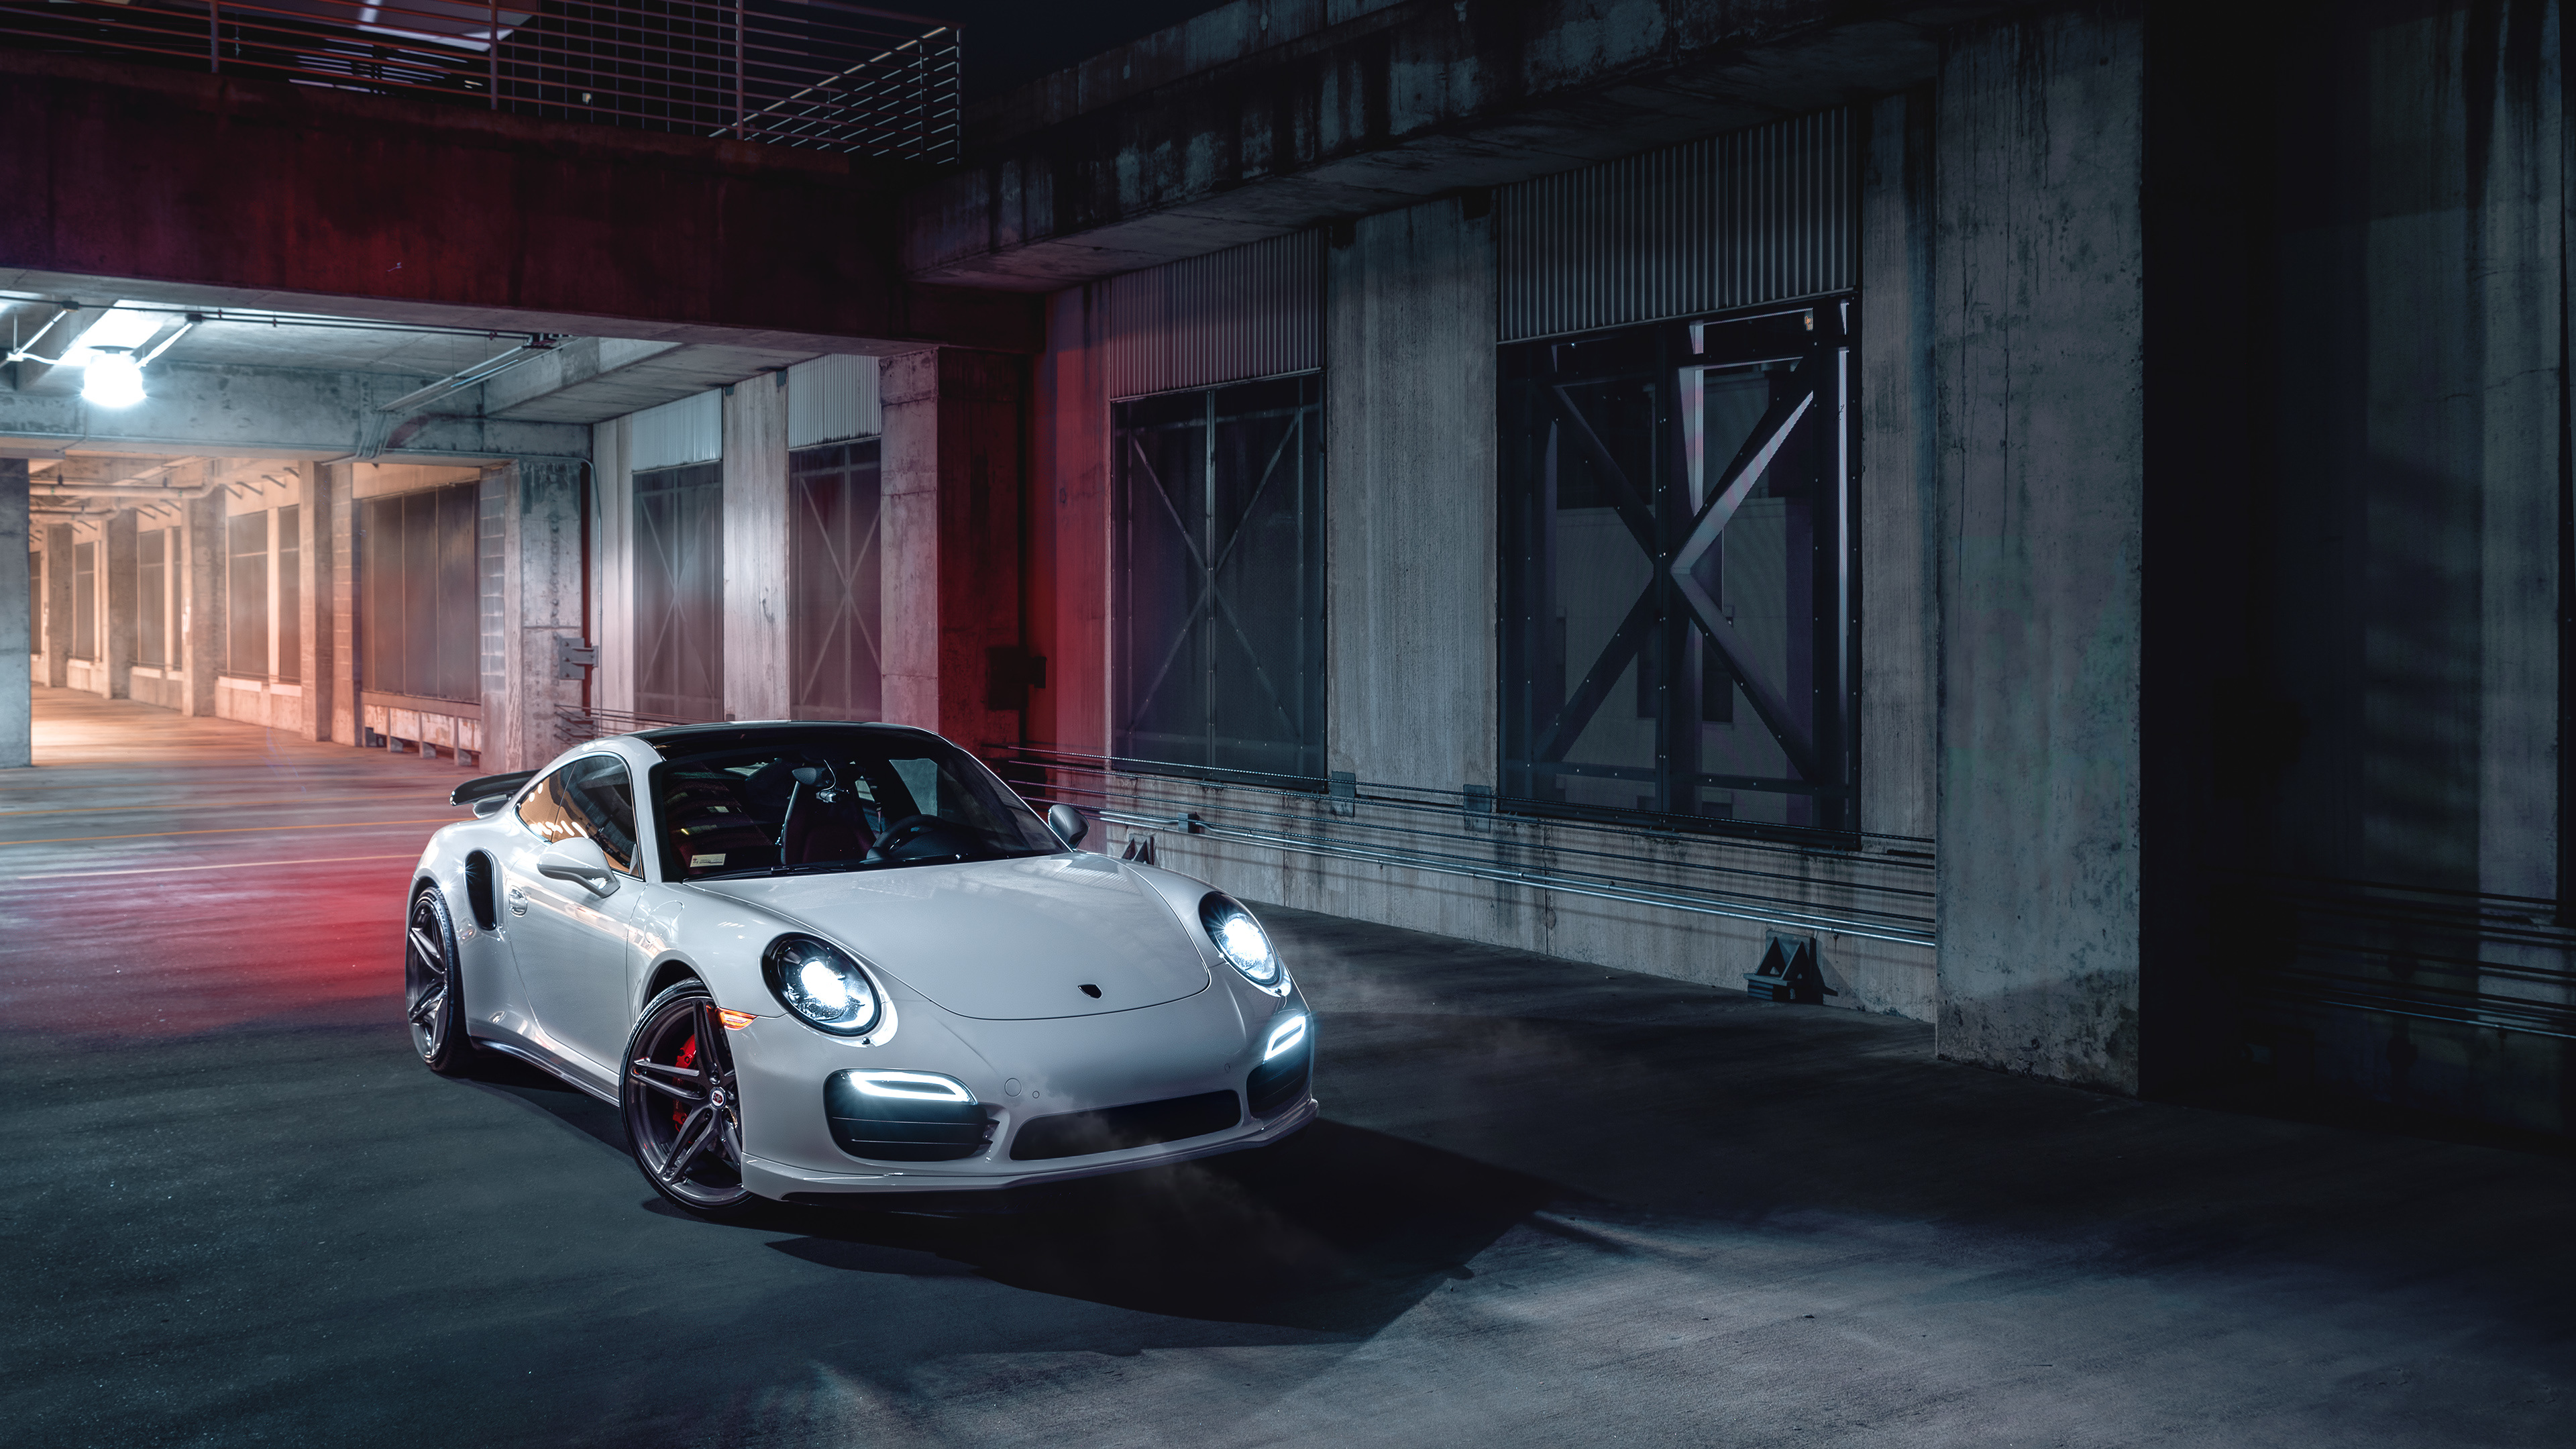 porsche 911 white 1569188299 - Porsche 911 White - porsche 911 wallpapers, hd-wallpapers, cars wallpapers, behance wallpapers, 4k-wallpapers